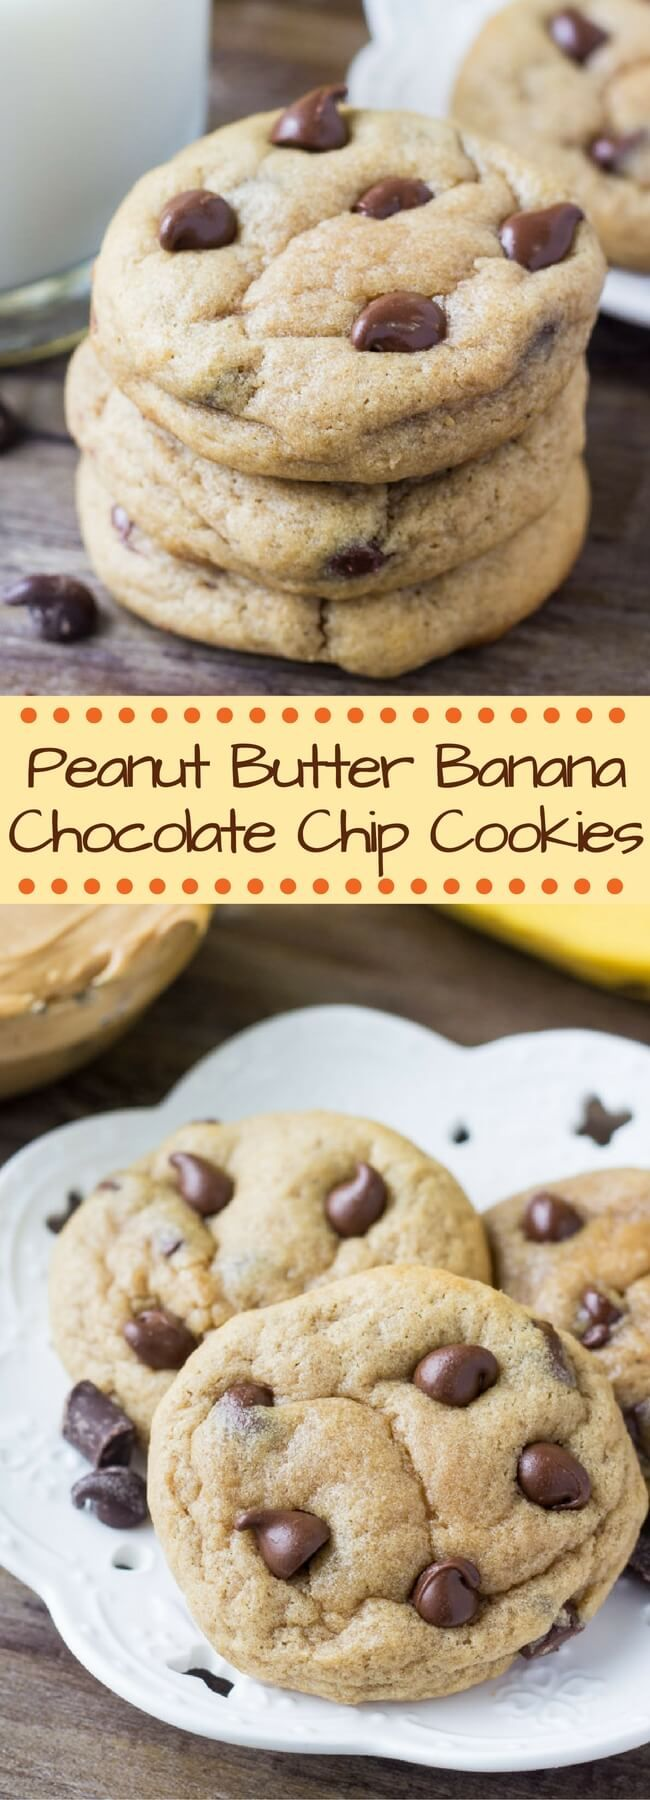 These Peanut Butter Banana Chocolate Chip Cookies are soft, chewy, a little gooey & packed with flavor. Seriously, the best way to use up ripe bananas! (Vegan Chocolate Chip)